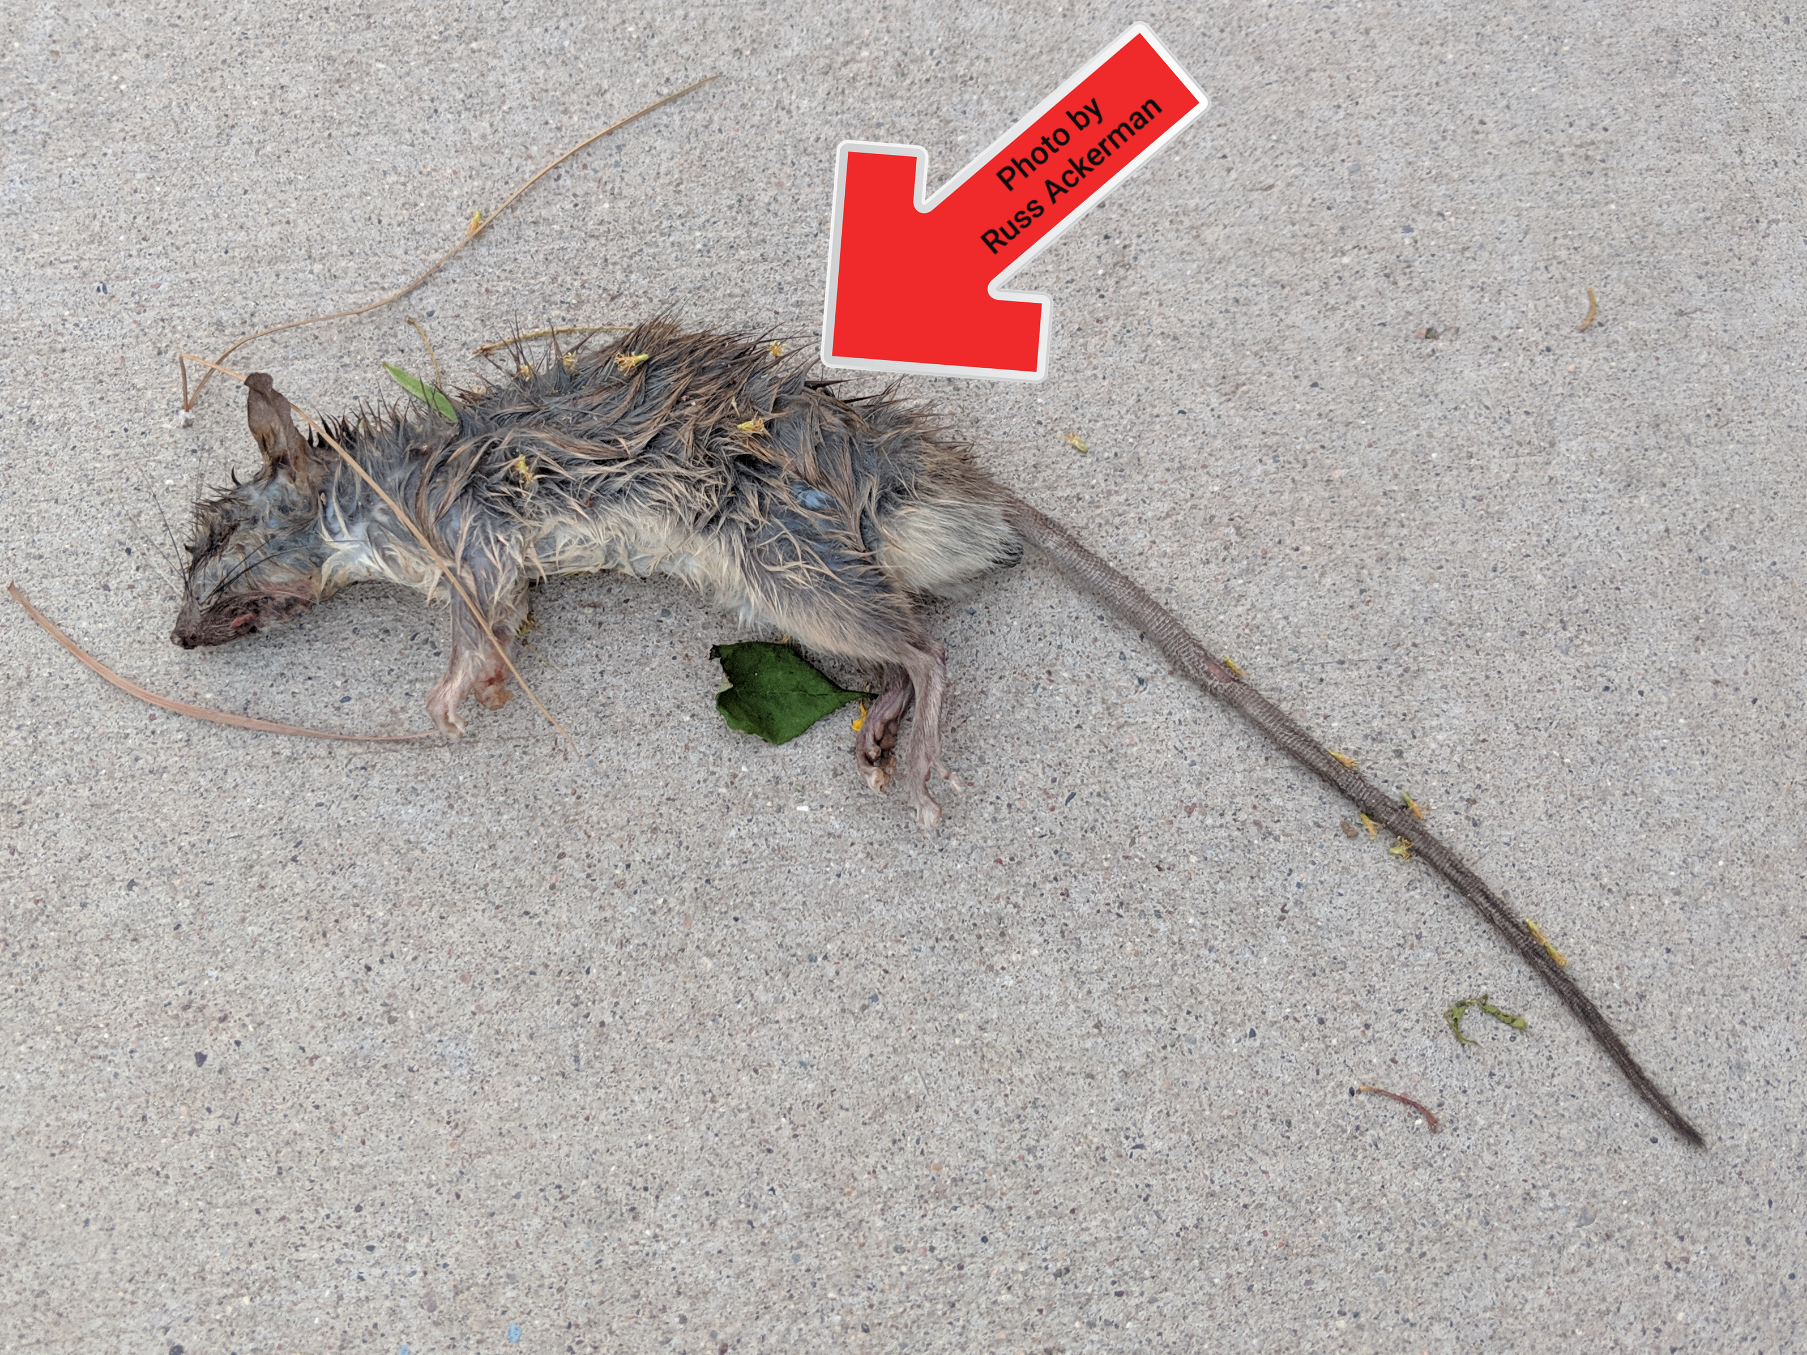 I'm seeing more rodents than usual this spring. If you have fruit trees, bird feeders or heavy weeds and debris around your property, expect to have rodents.